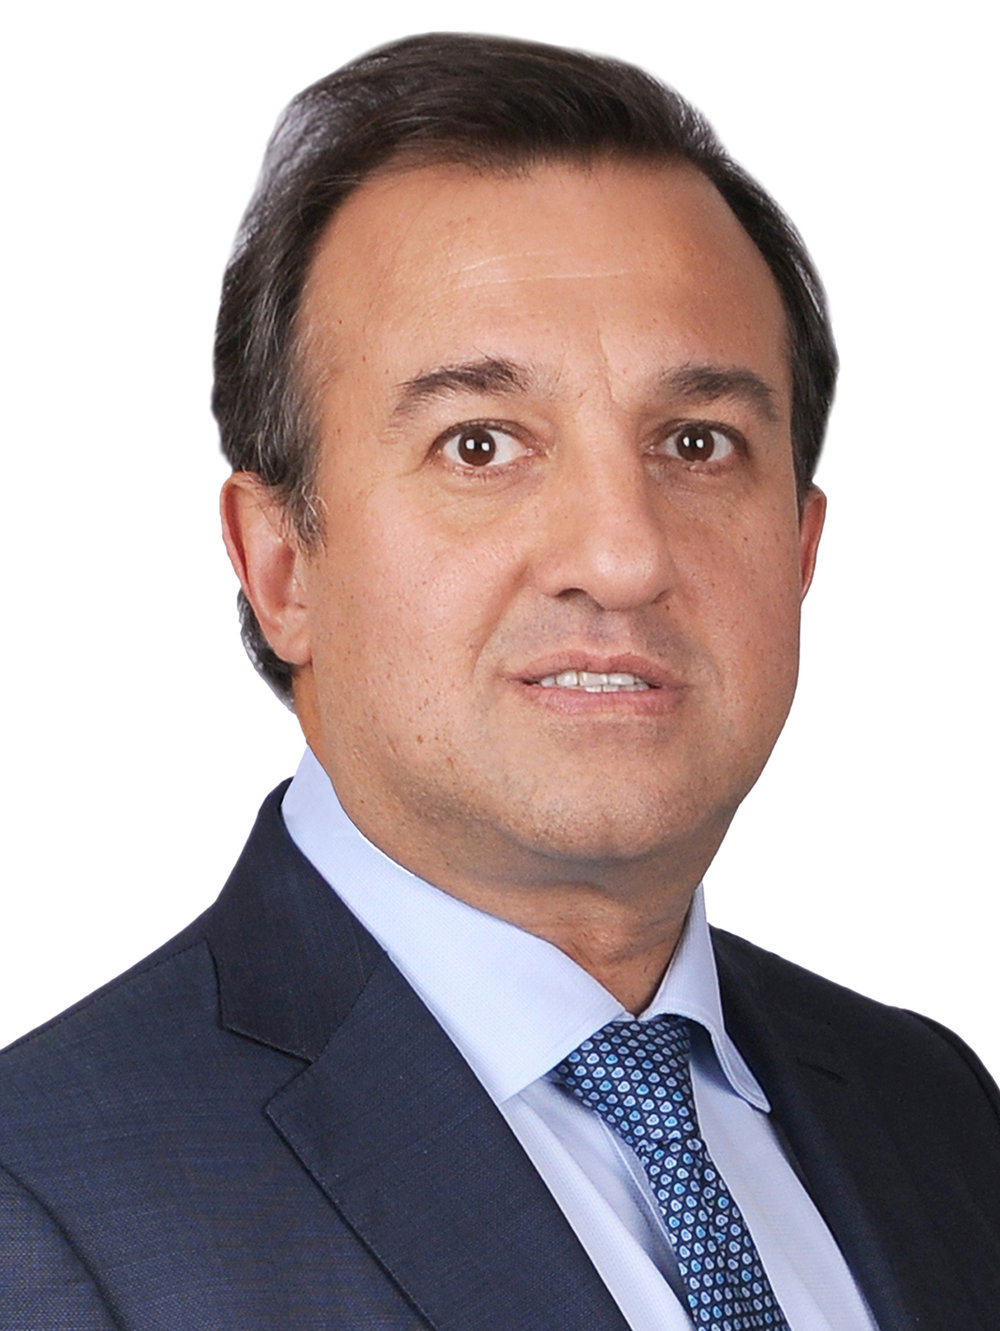 - MR JAIDEV SHROFFis the Global CEO of UPL Limited. He is a well-recognized global leader in the Agri-Inputs industry with over 28 years experience in India and internationally.